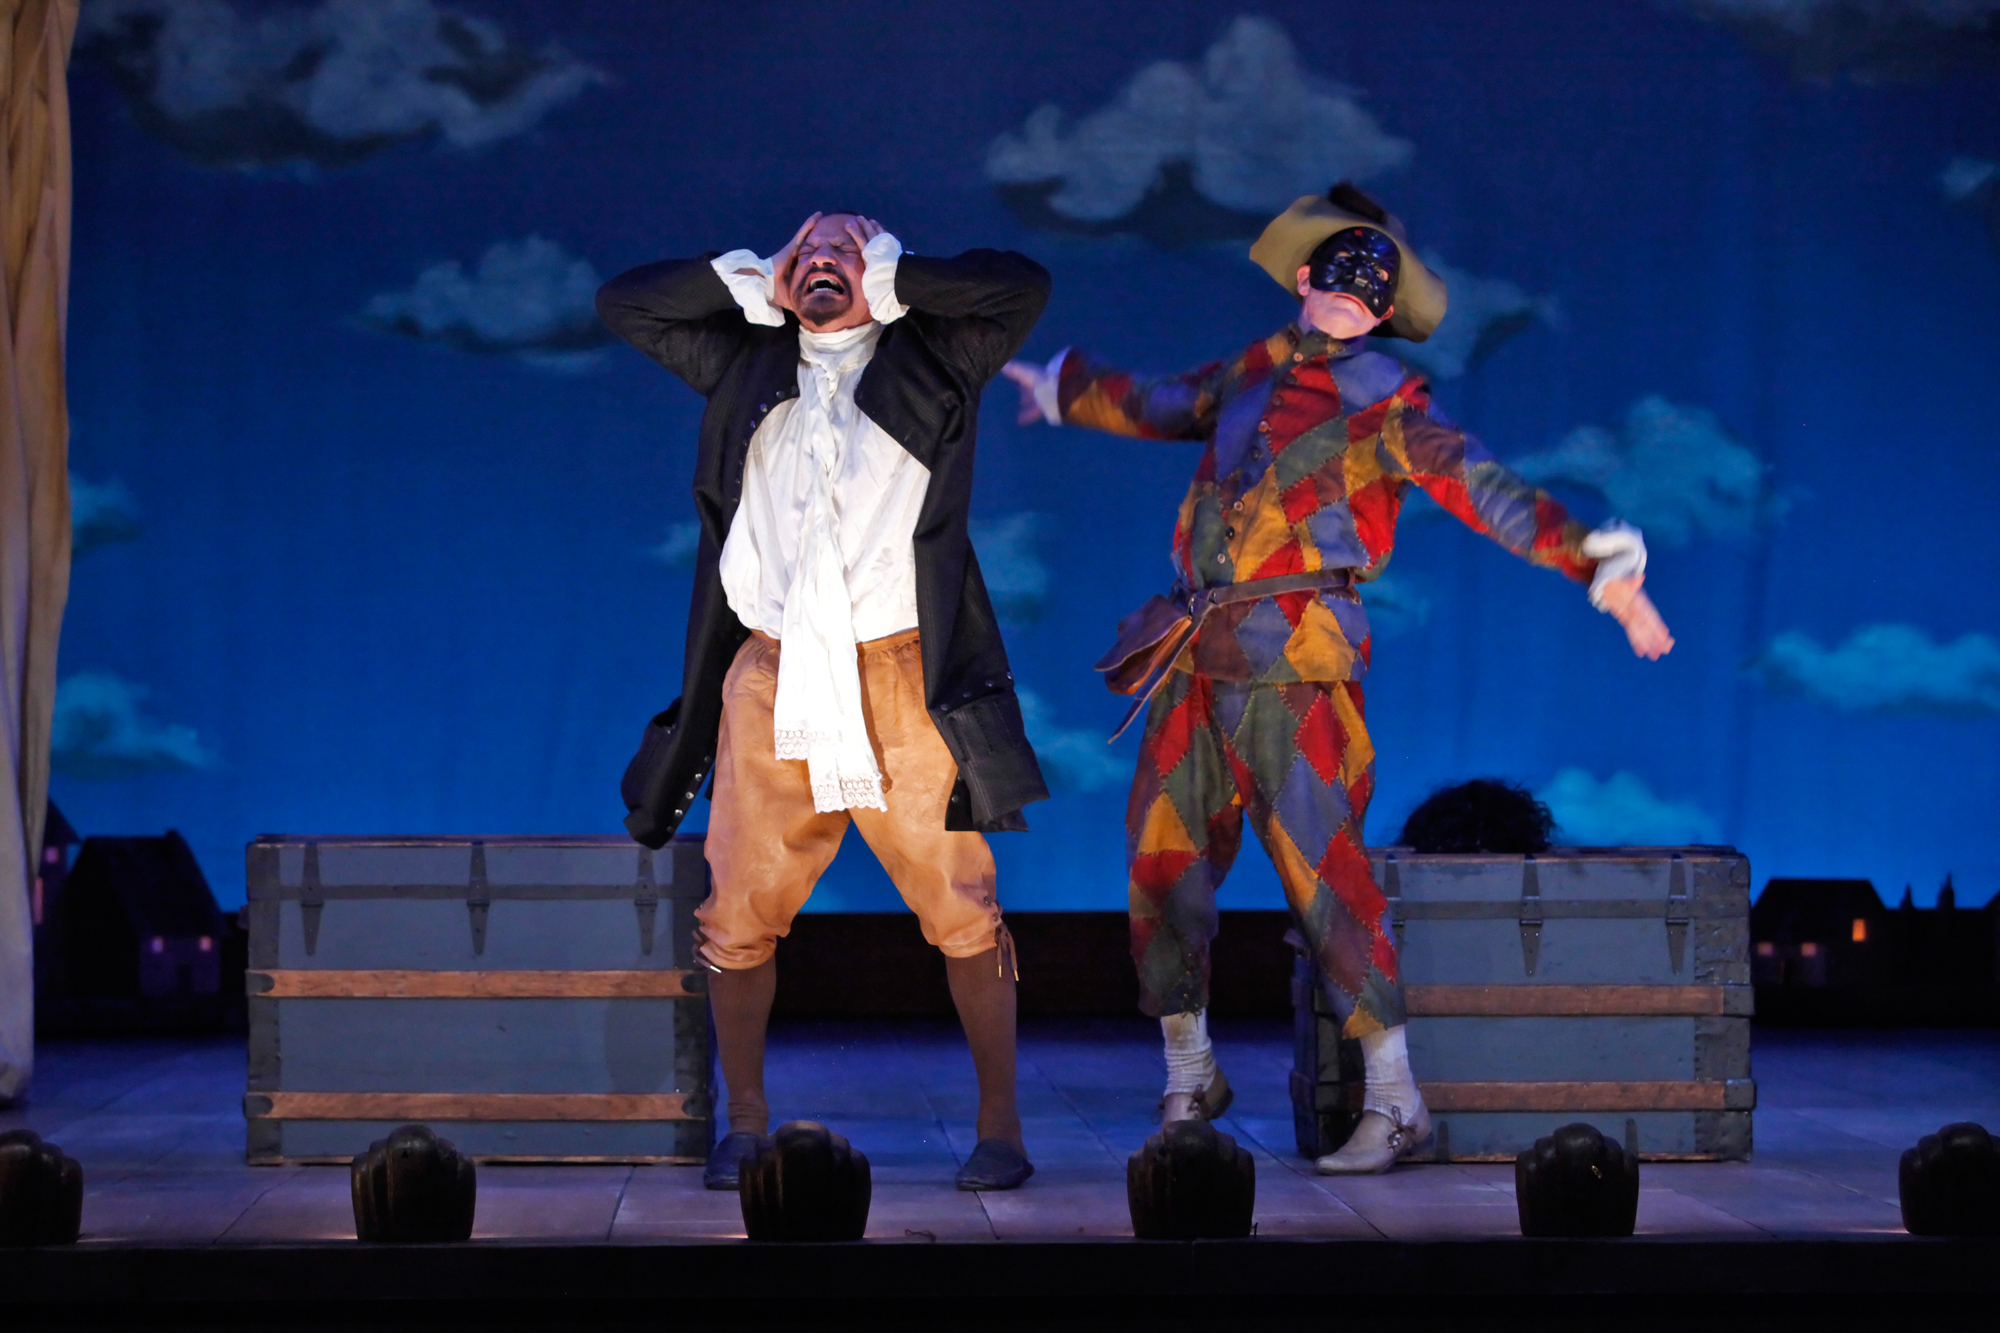 Jesse J. Perez as Florindo and Steven Epp as Truffaldino in Yale Repertory Theatre's 2010 production of The Servant of Two Masters, directed by Christopher Bayes. Photo by Richard Termine.